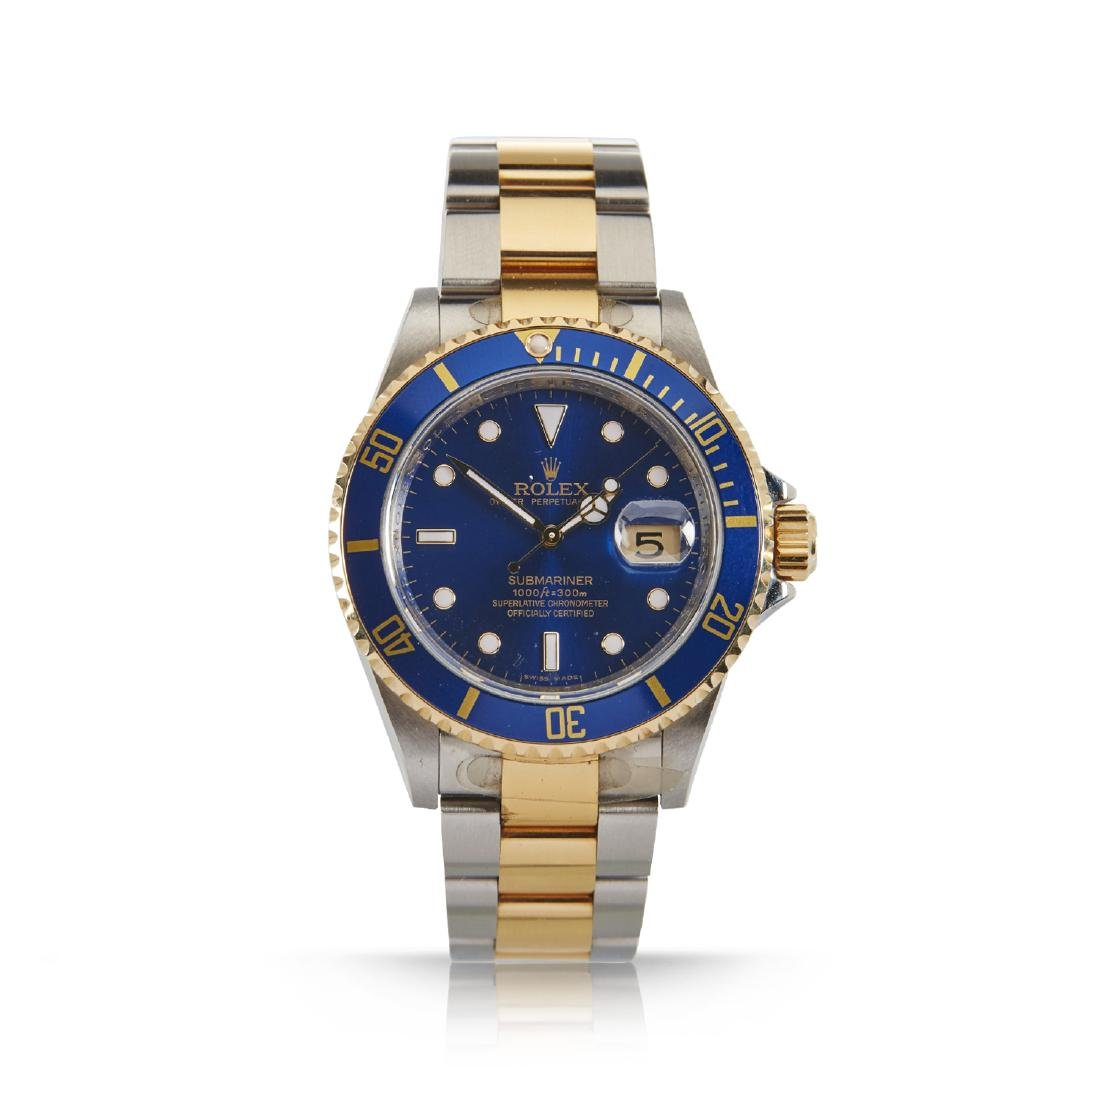 Rolex, Blue Submariner, Ref. 16113